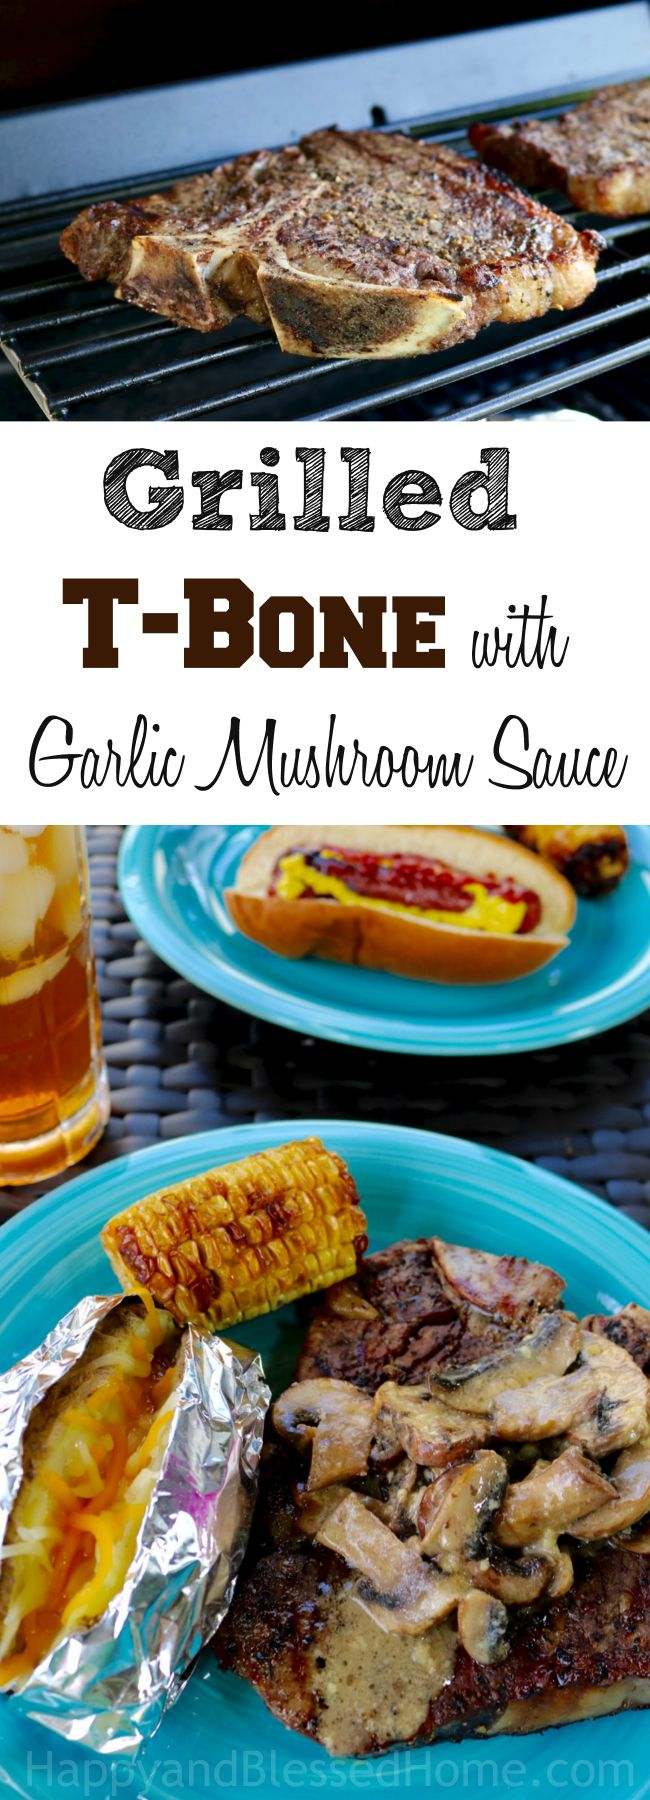 As if a tender, juicy, perfectly grilled T-bone steak wasn't enough.. Add this mouthwatering Garlic Mushroom Sauce for even more flavor! So easy to make and perfect for summer grilling. Ad It's a #SummerOfGrilling with @gianteagle